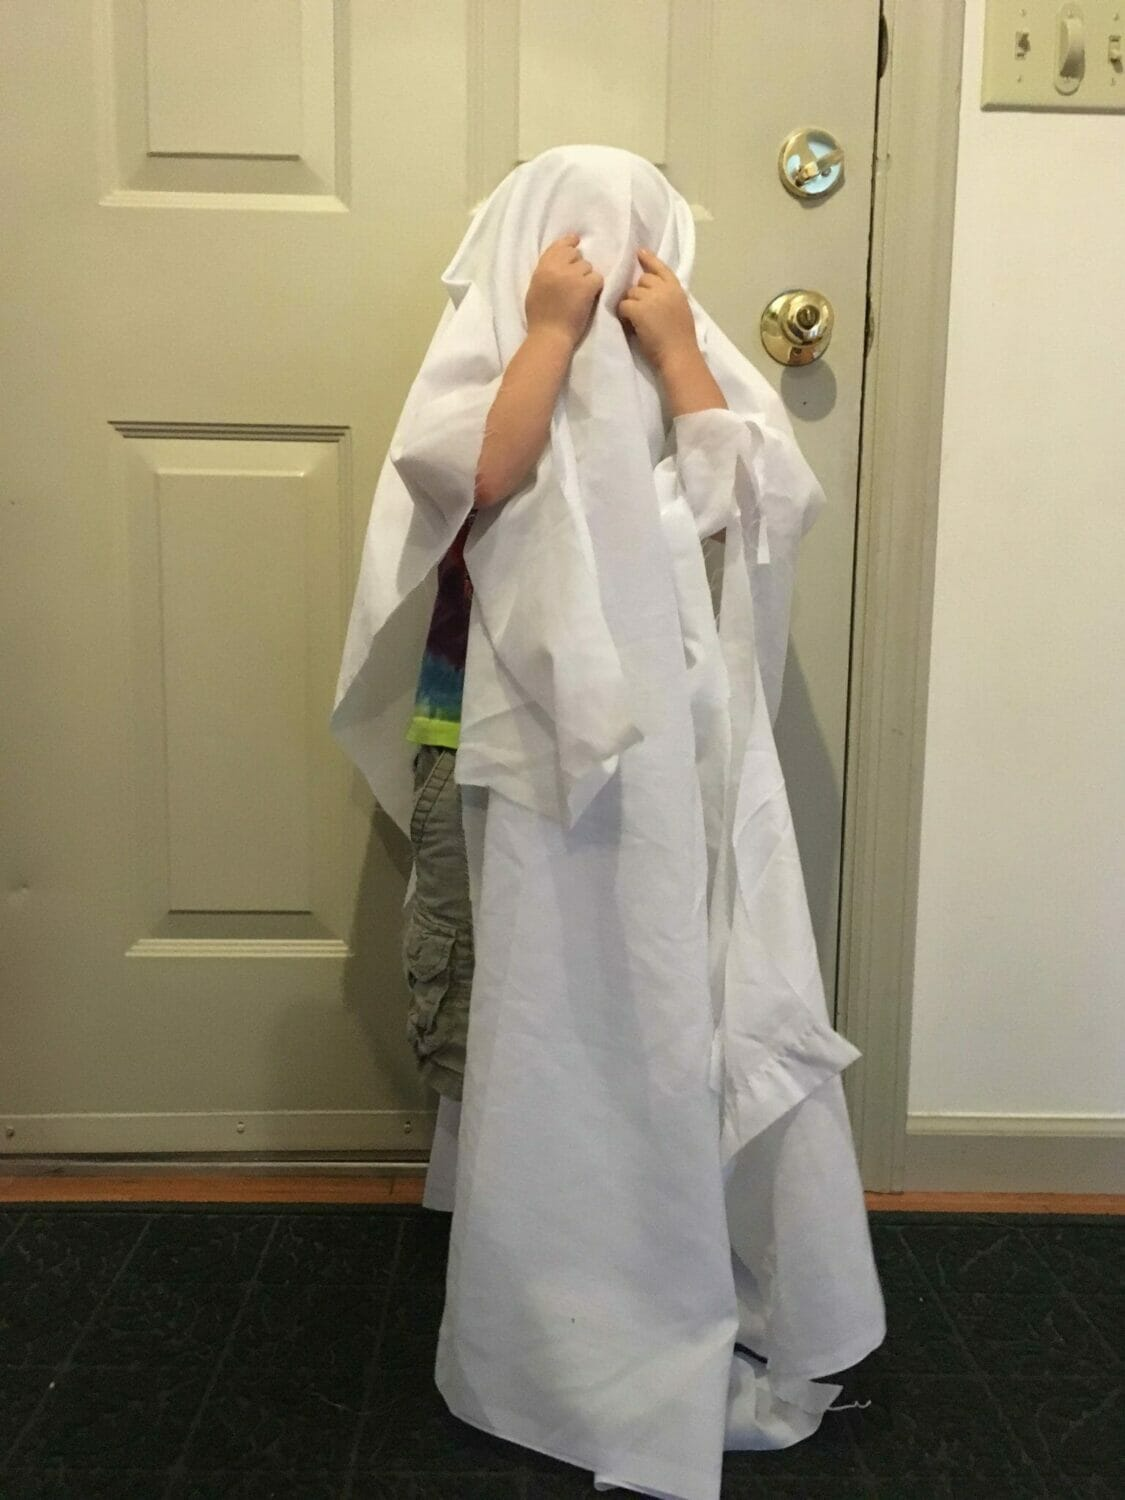 How To Make A Ghost Costume (Itu0027s Harder Than Youu0027d ... & How To Make A Ghost Costume (Itu0027s Harder Than Youu0027d Think!) - Super ...